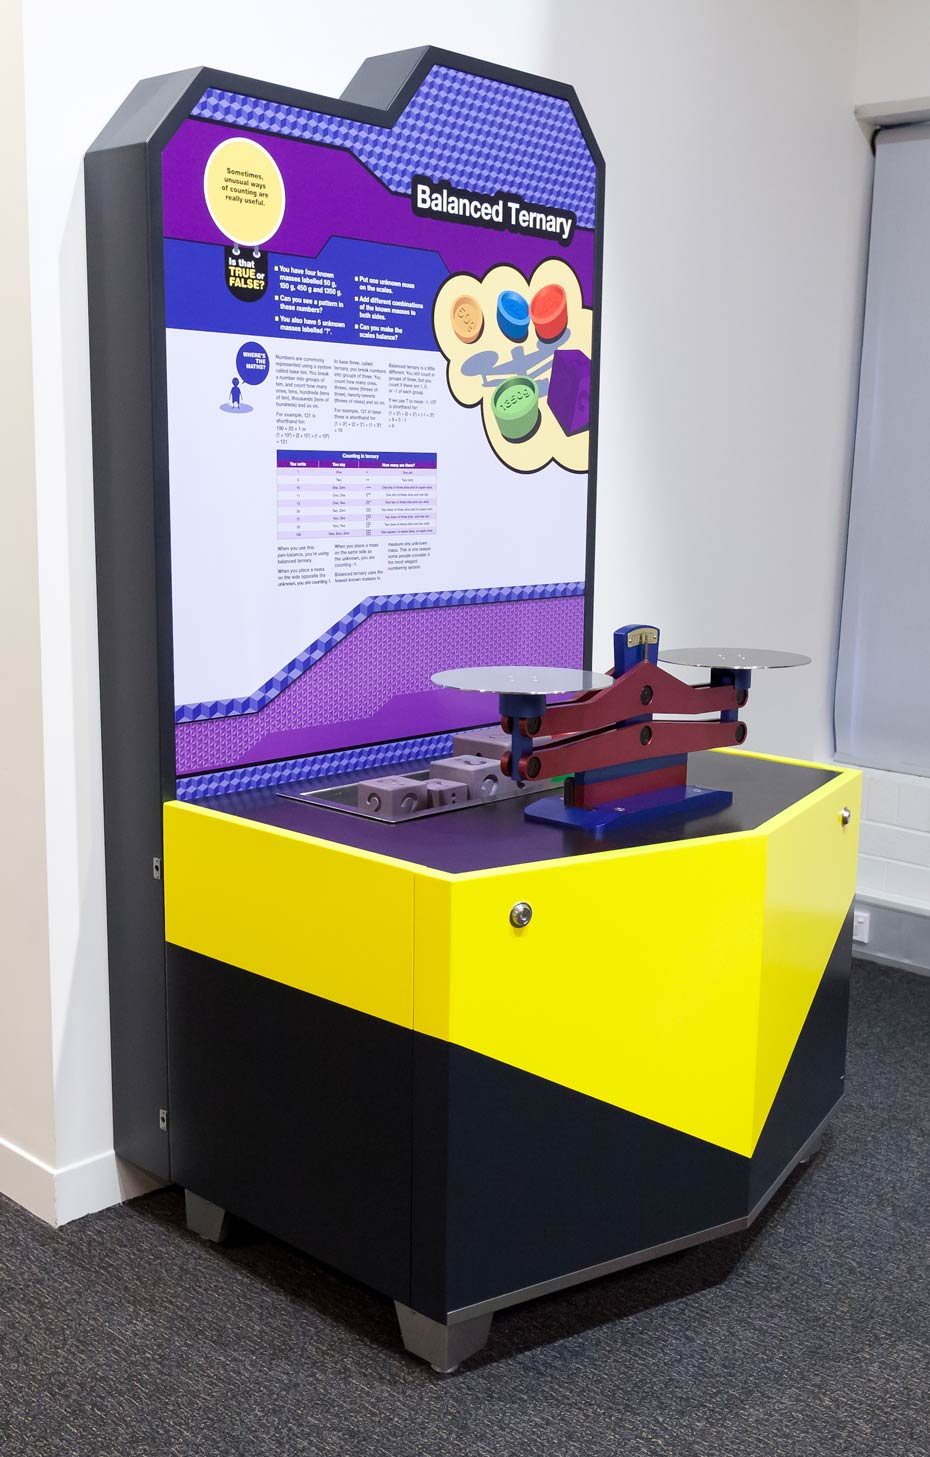 A black, yellow, white and purple exhibit sitting in a white room. On the exhibit table sits a blue and red scale.